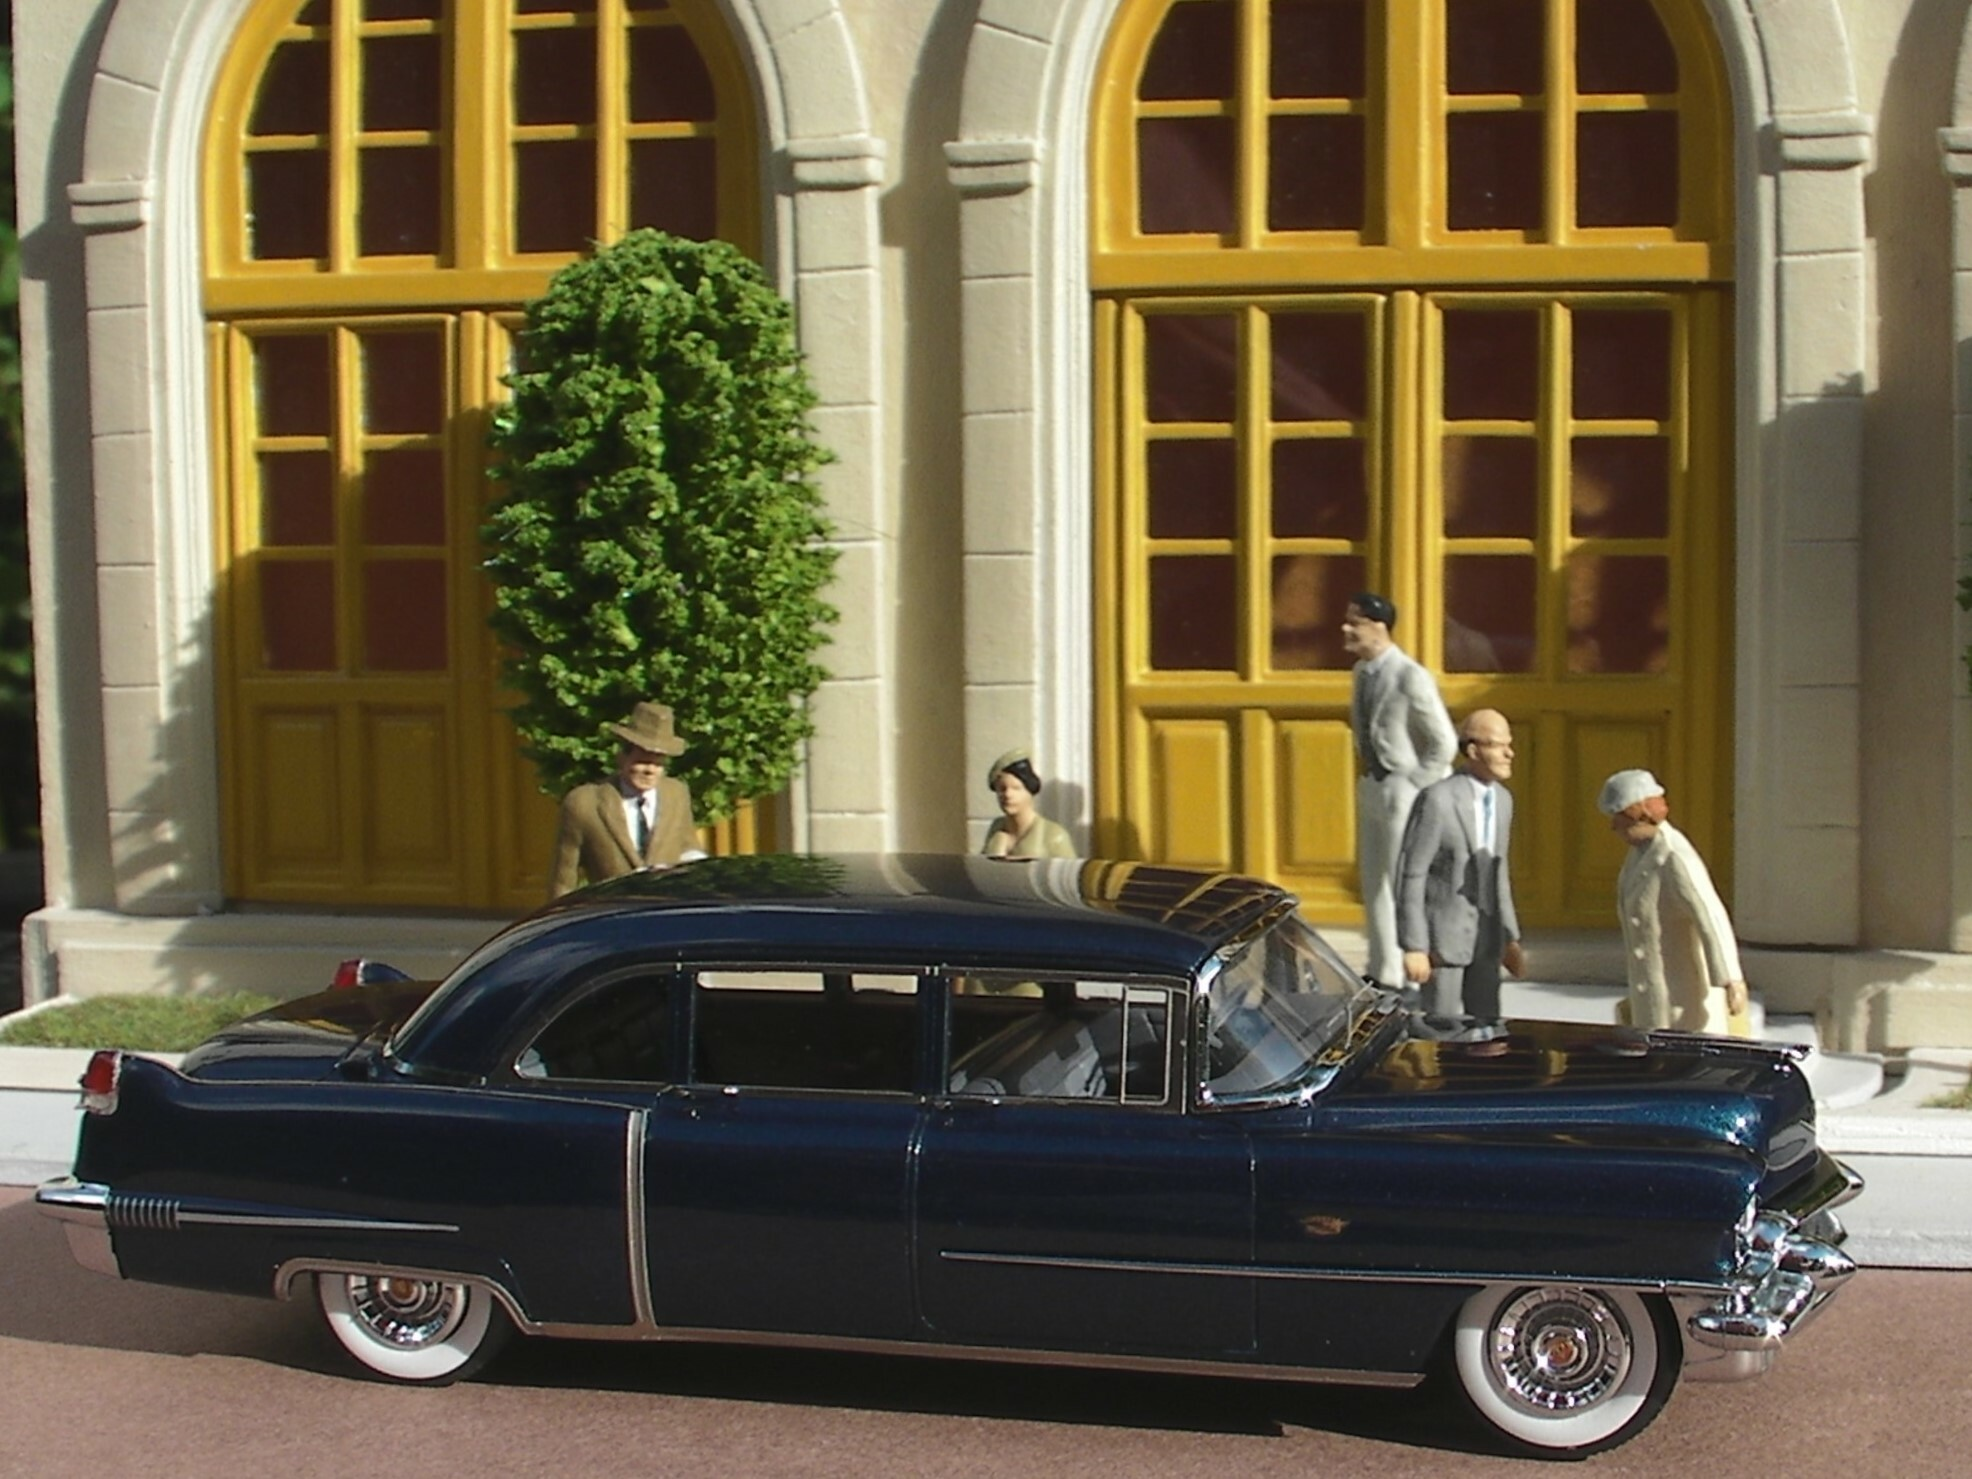 Cadillac 56 Serries 75 Fleetwood Limousine (1)